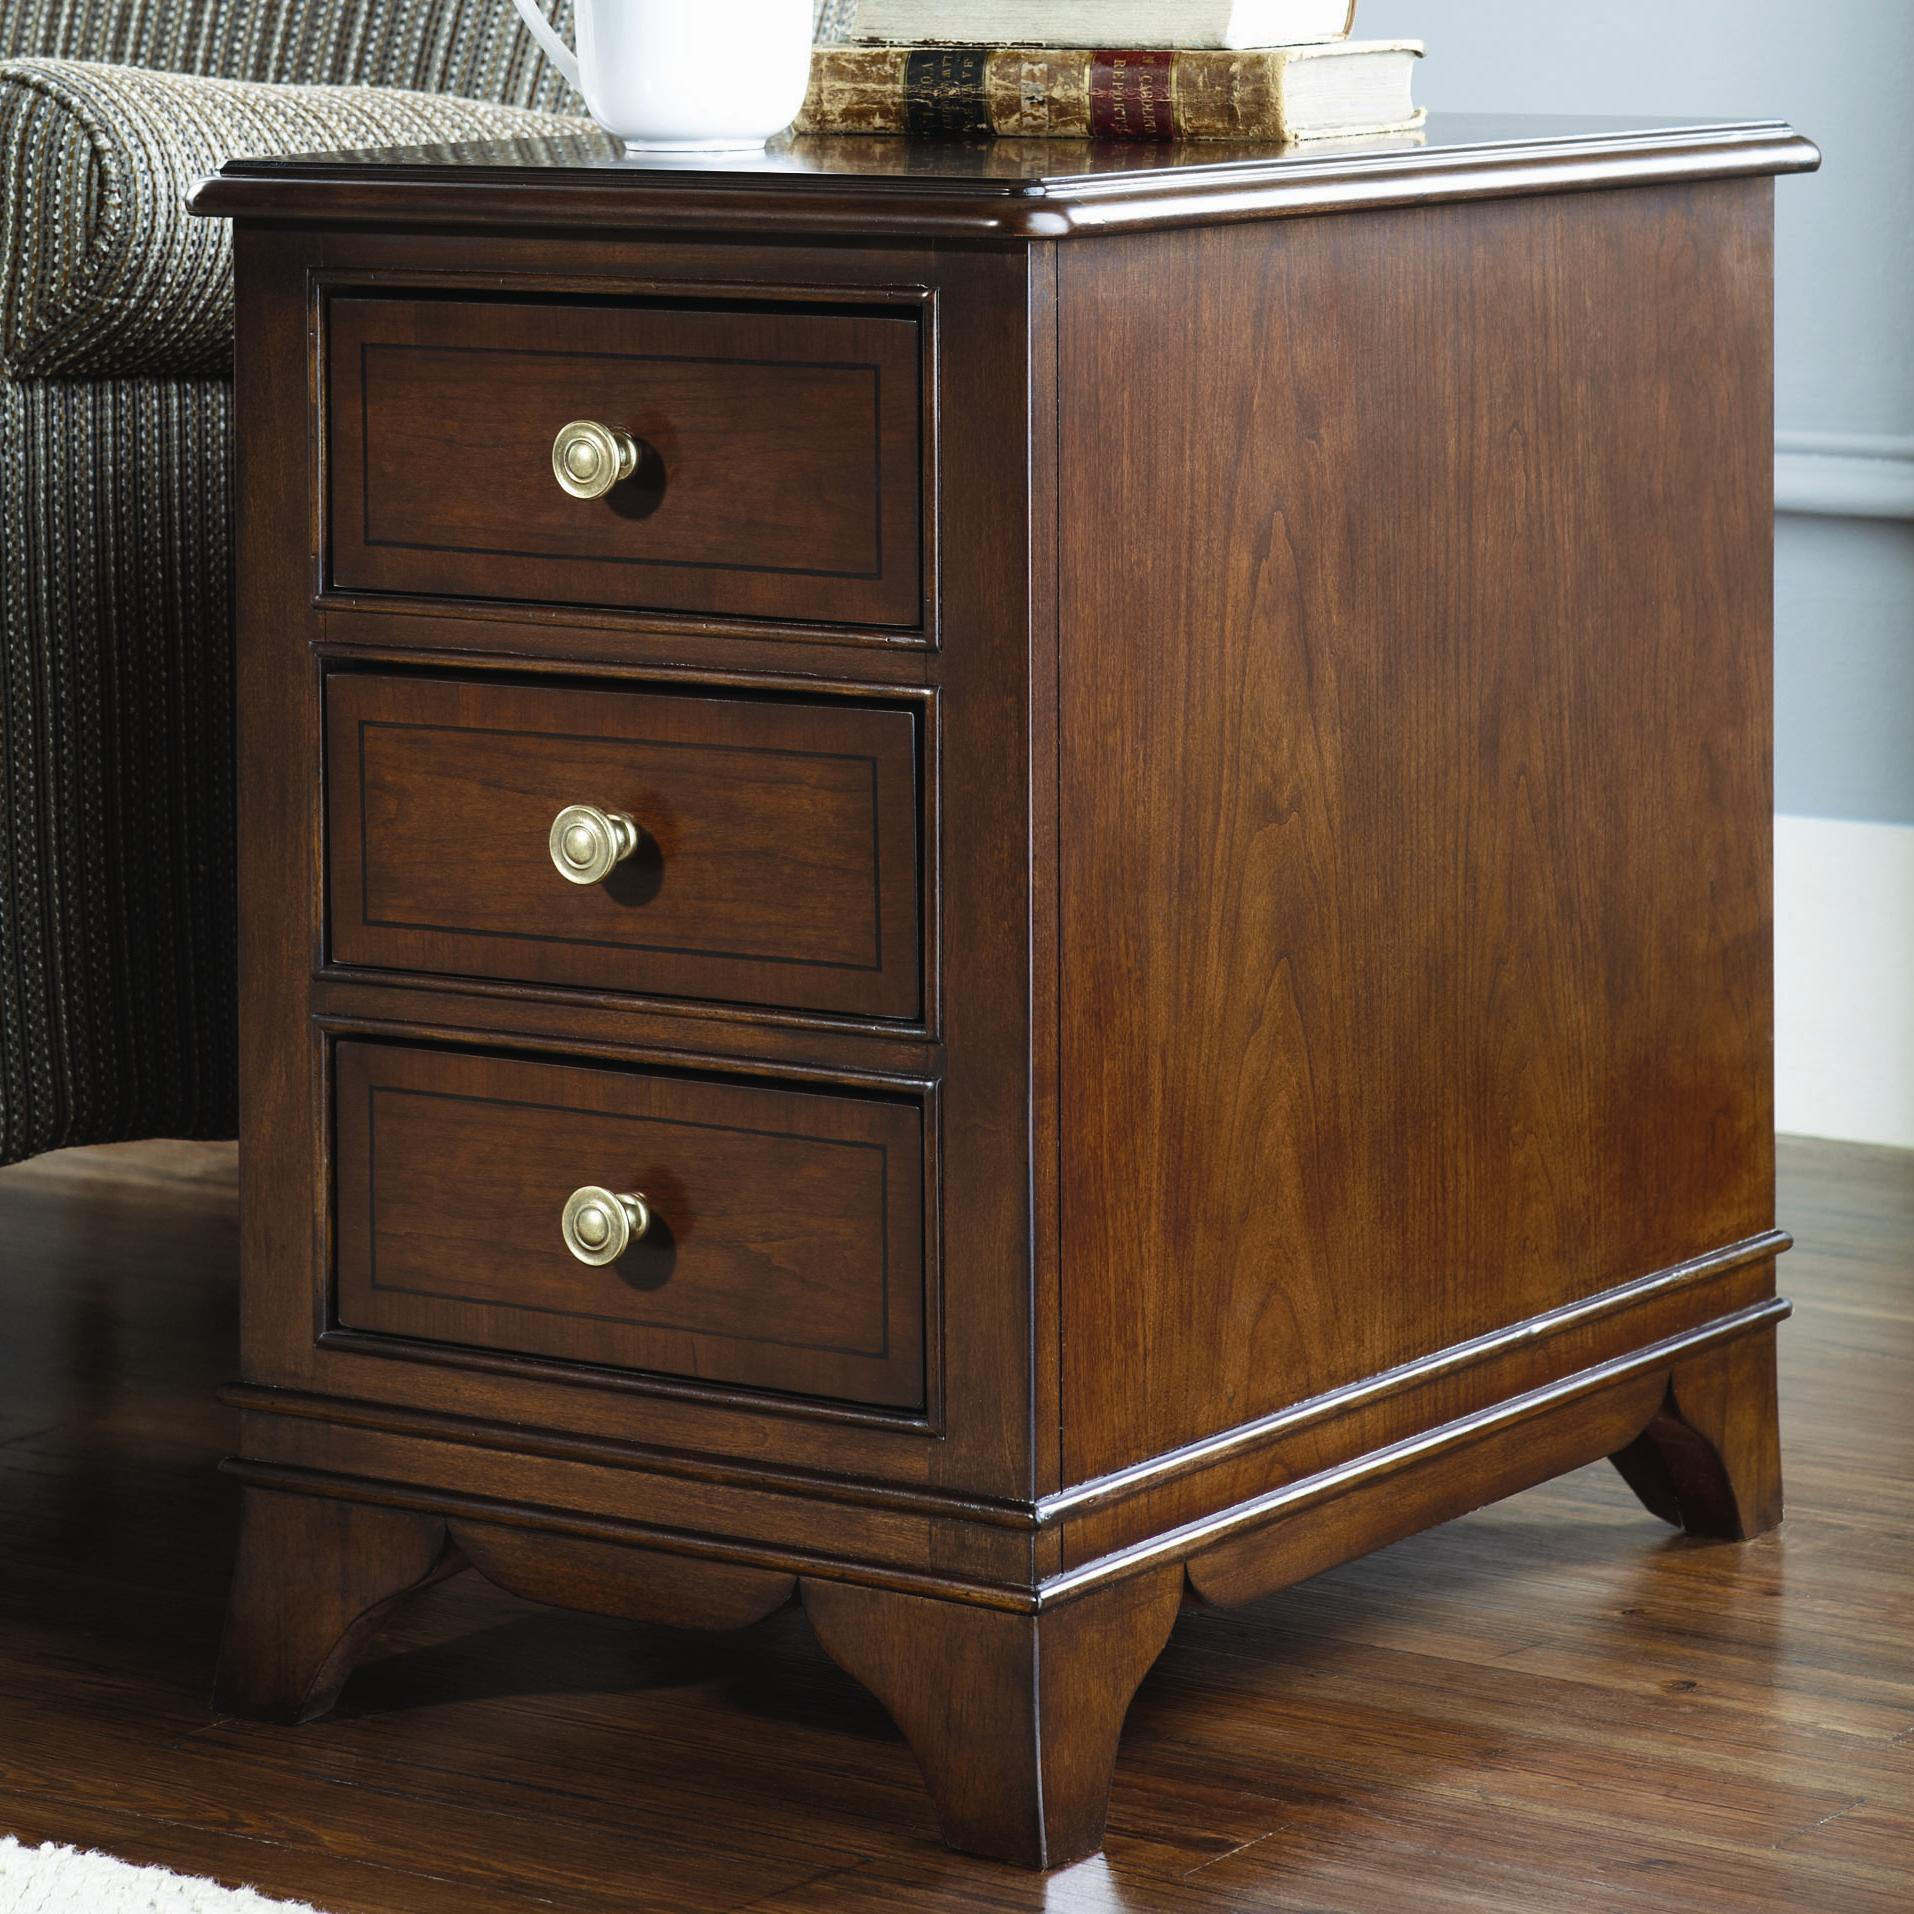 furniture complete your living room with new chairside end table shelves small tables basket storage brookfield ashley bedside drawers accent baskets rectangle drawer italian home